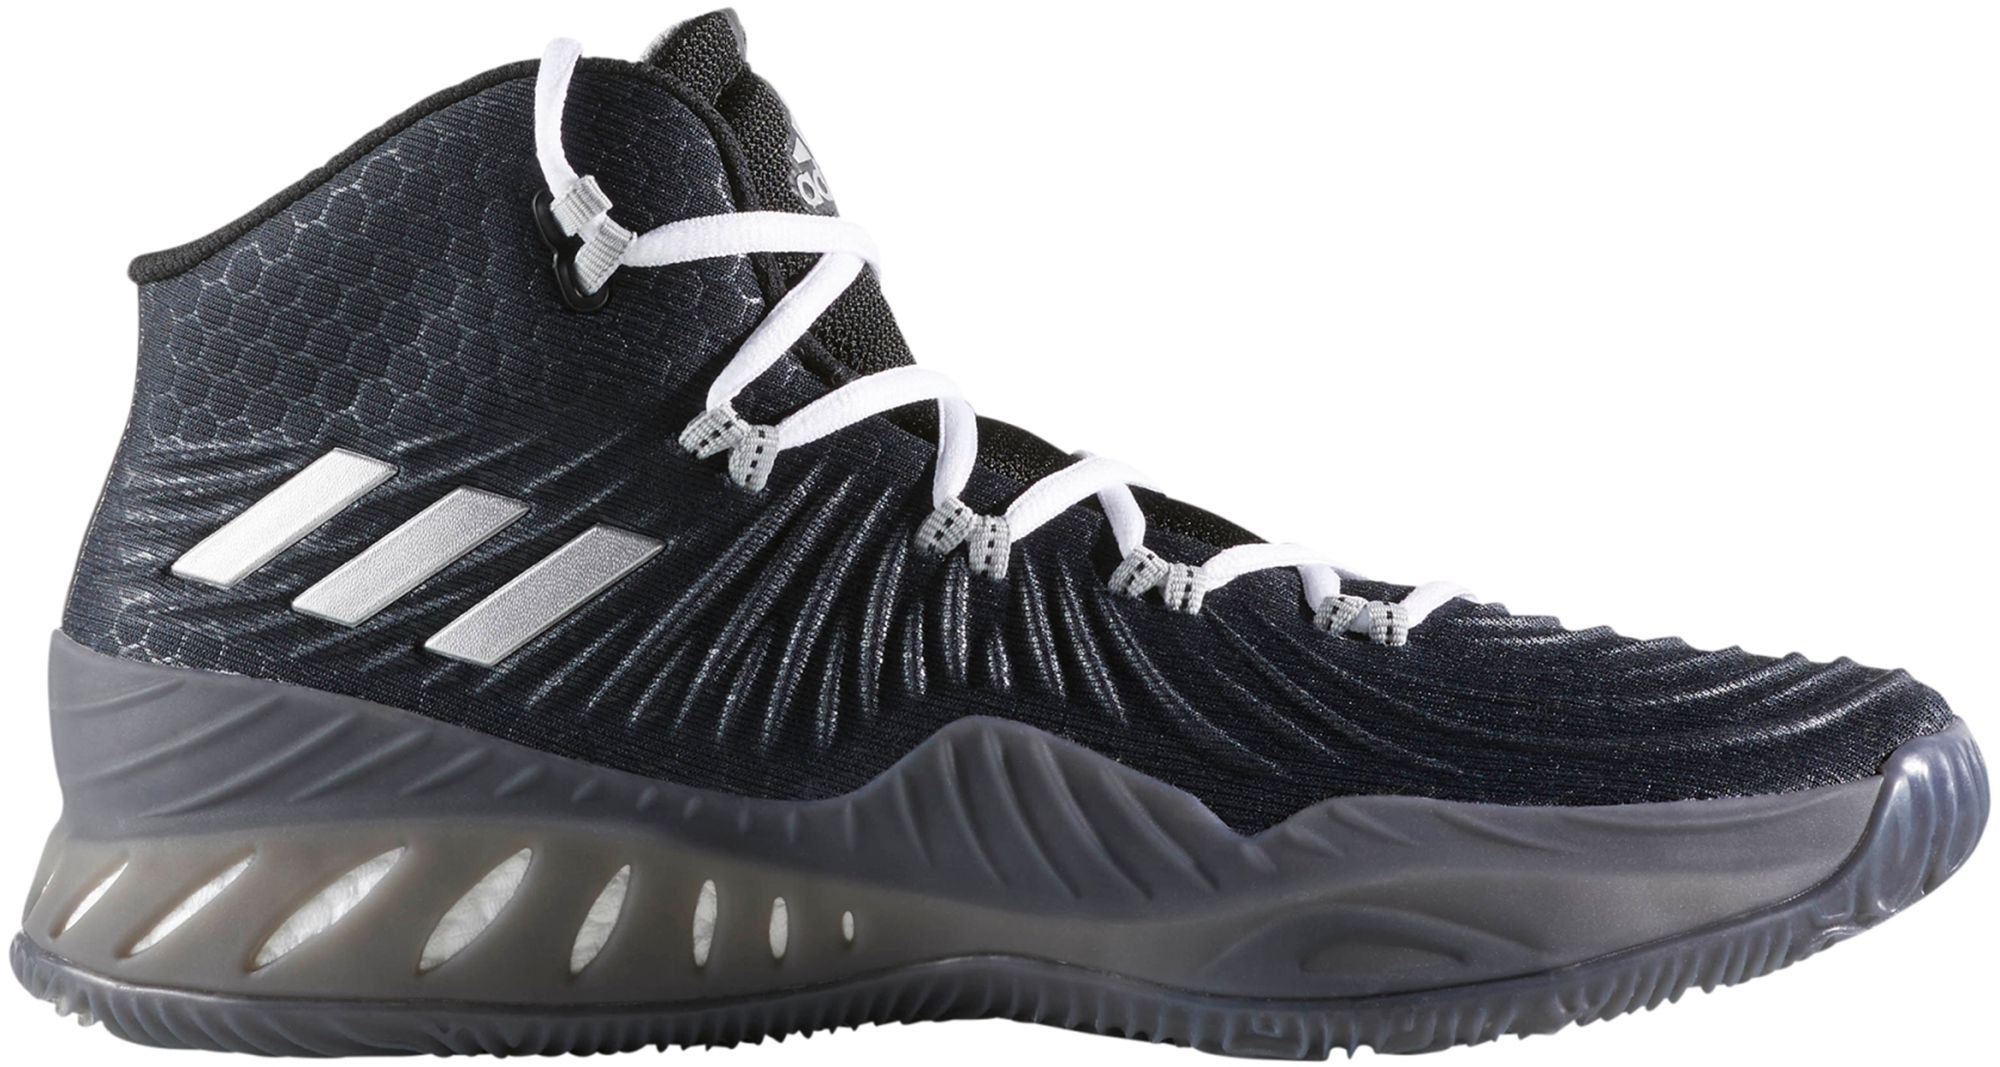 4ce29e102940 adidas Men s Crazy Explosive 2017 Basketball Shoes